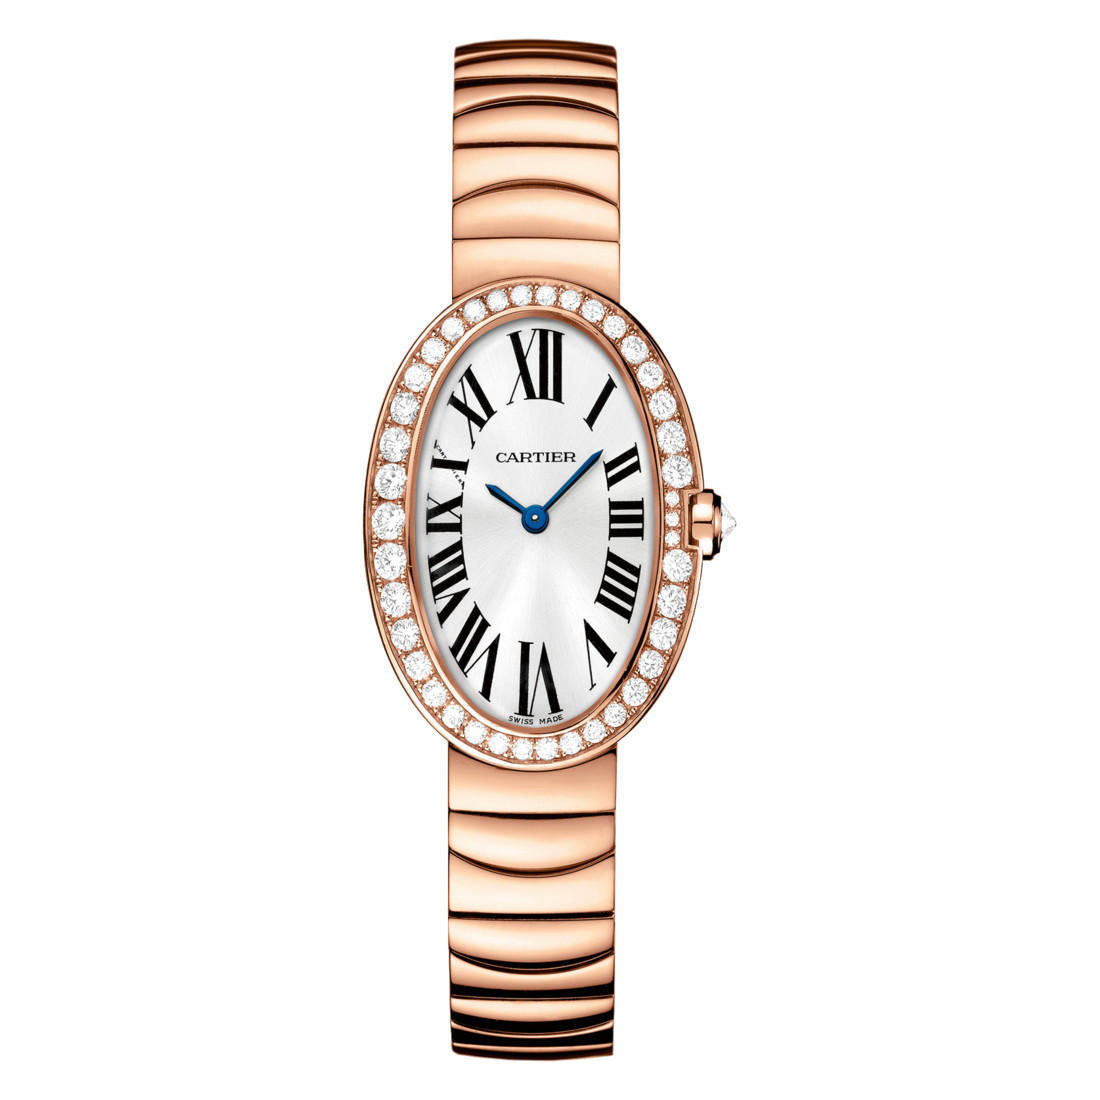 Baignoire Small Rose Gold & Diamonds (WB520002)